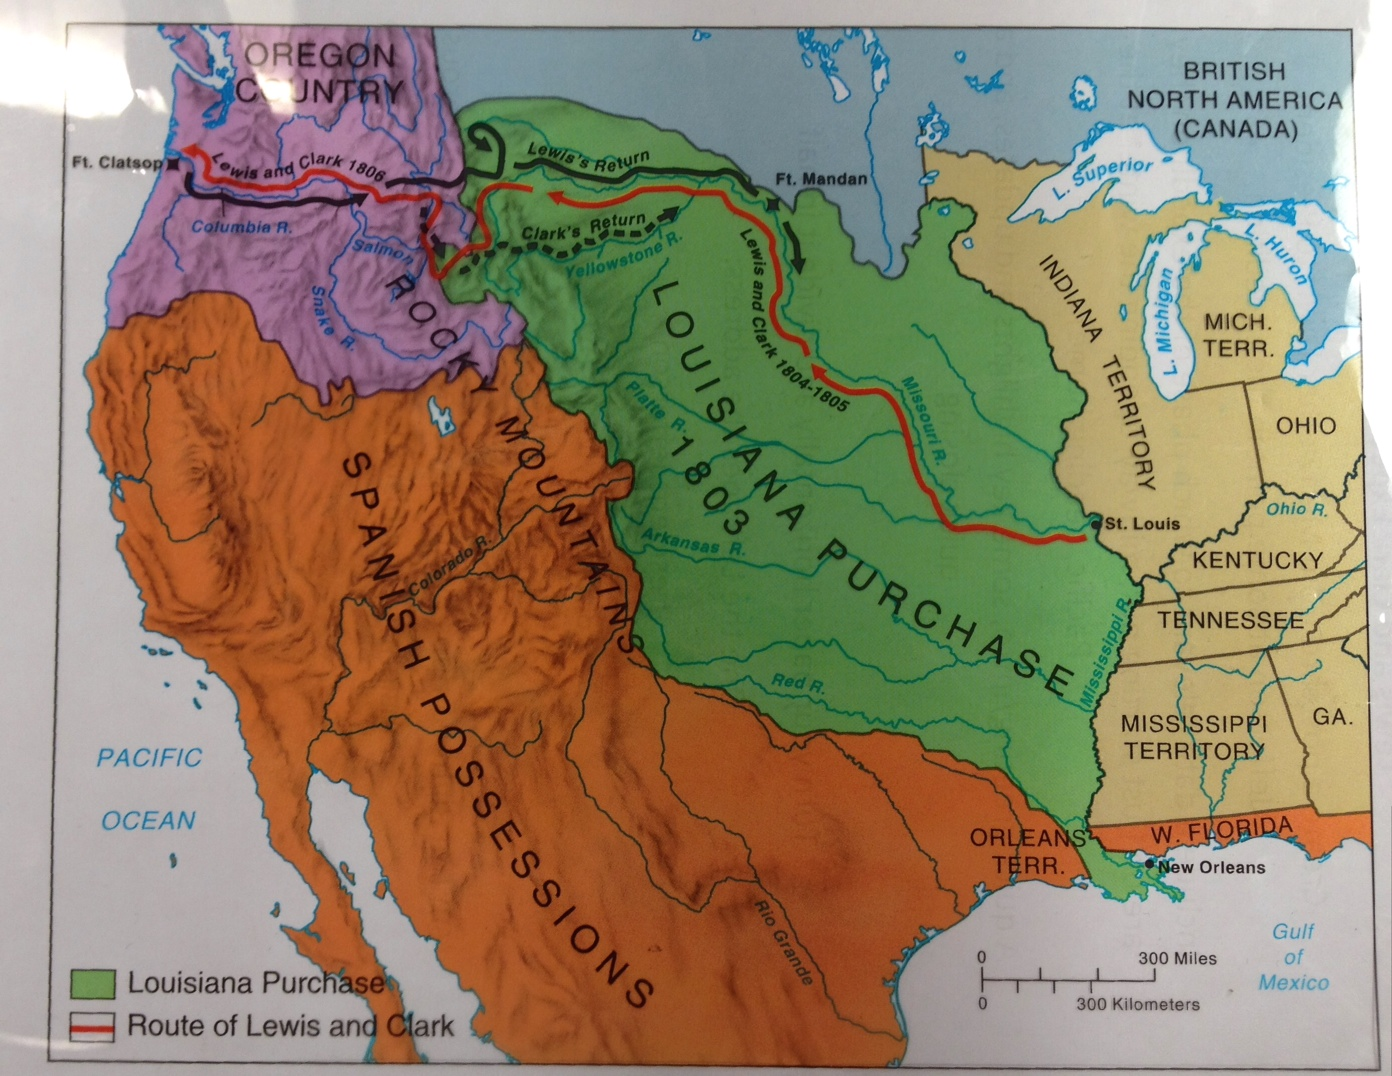 Outline Map Of The Louisiana Purchase With Louisiana Territory.